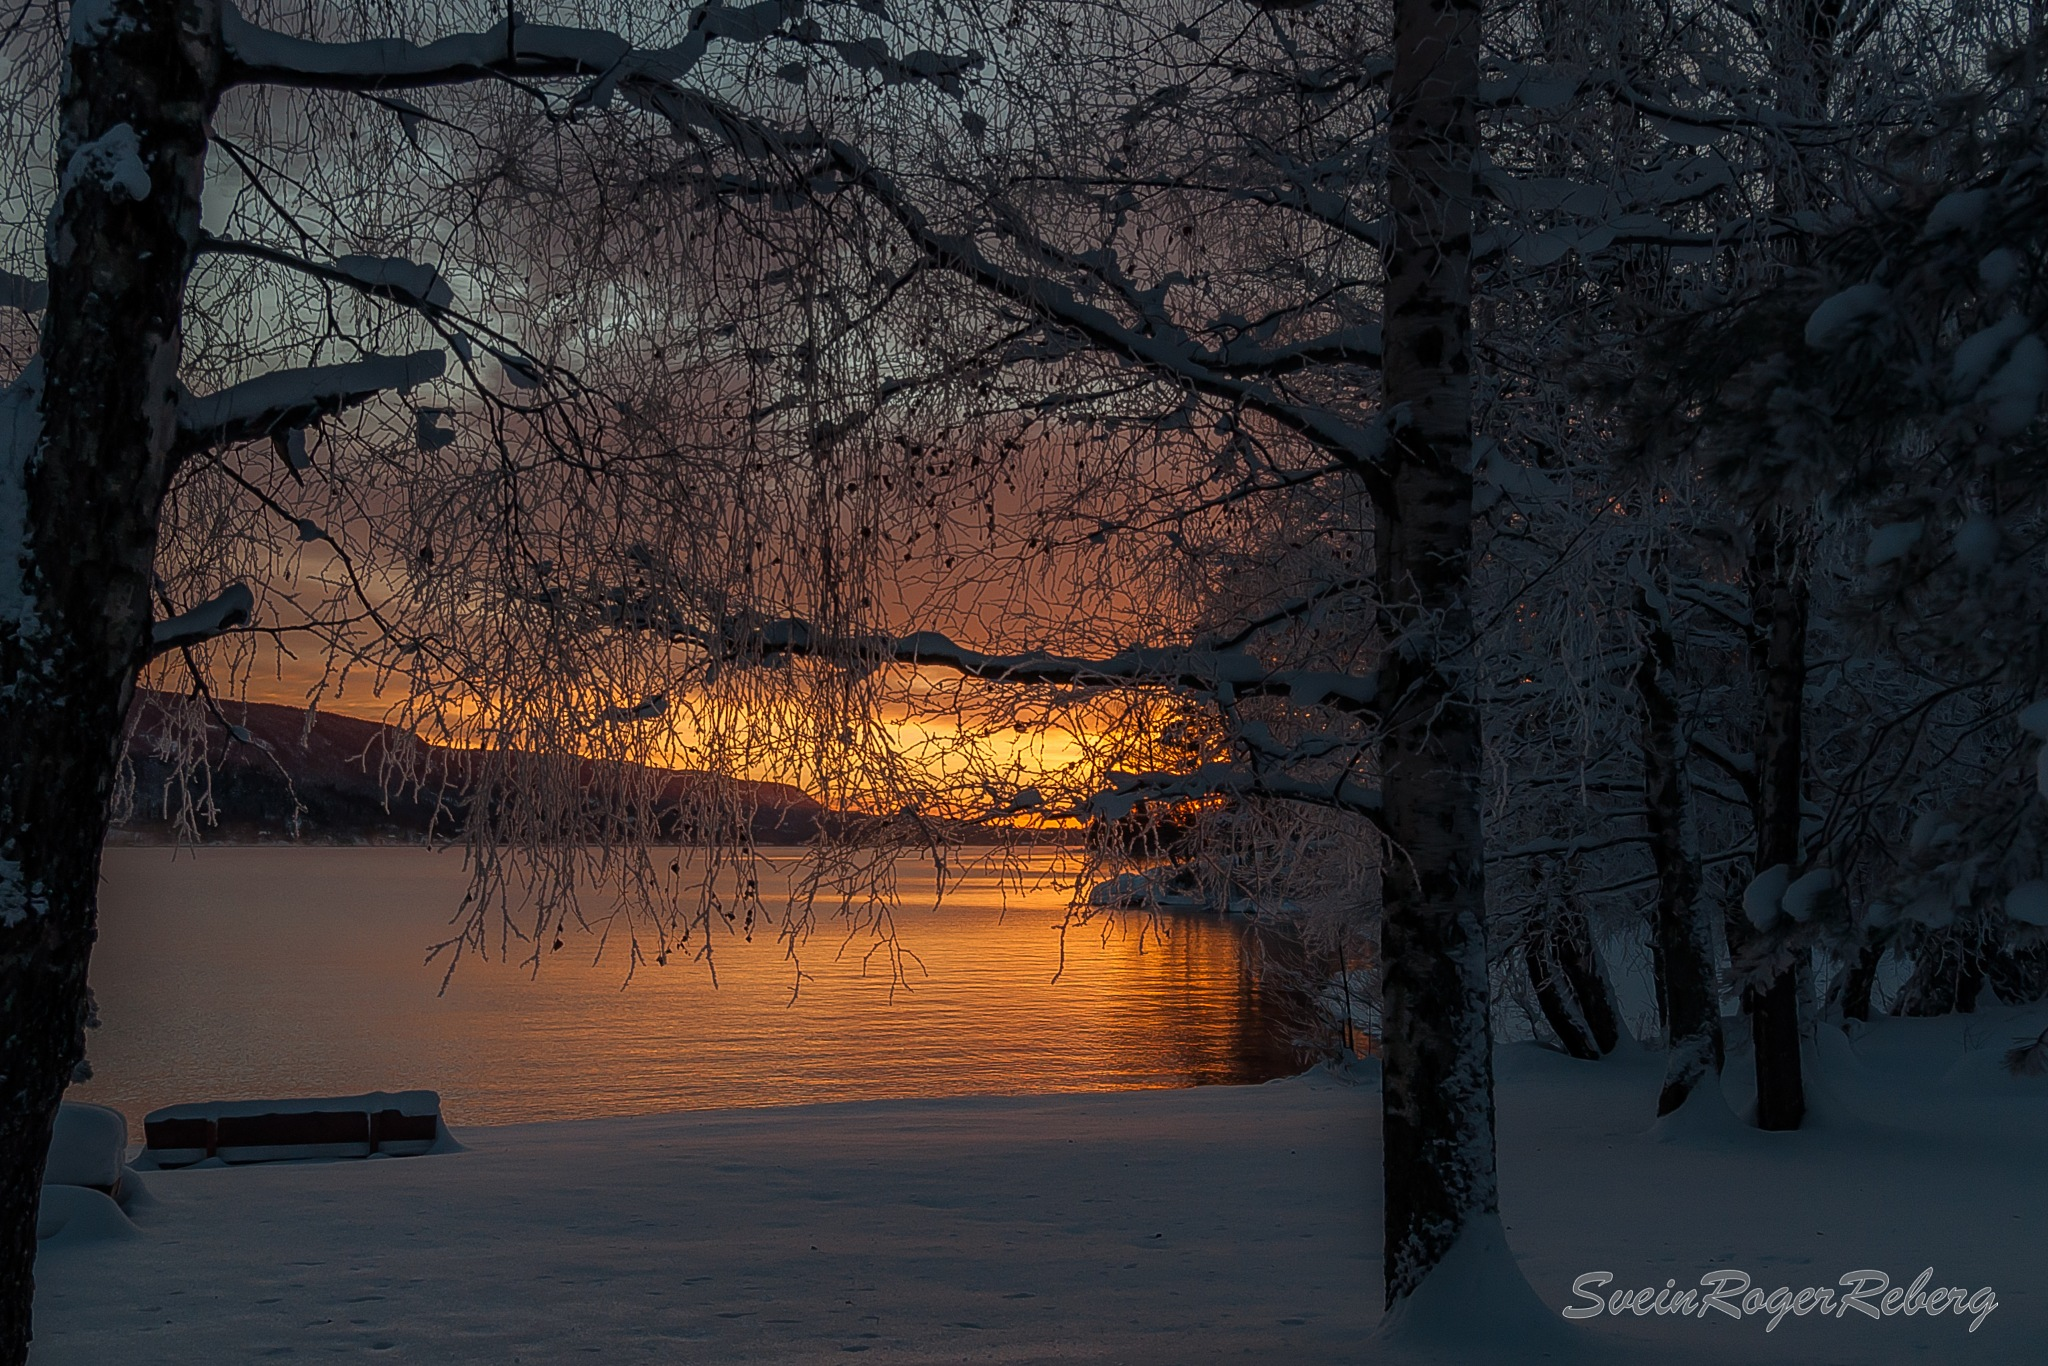 Winter and cold by Svein Roger Reberg